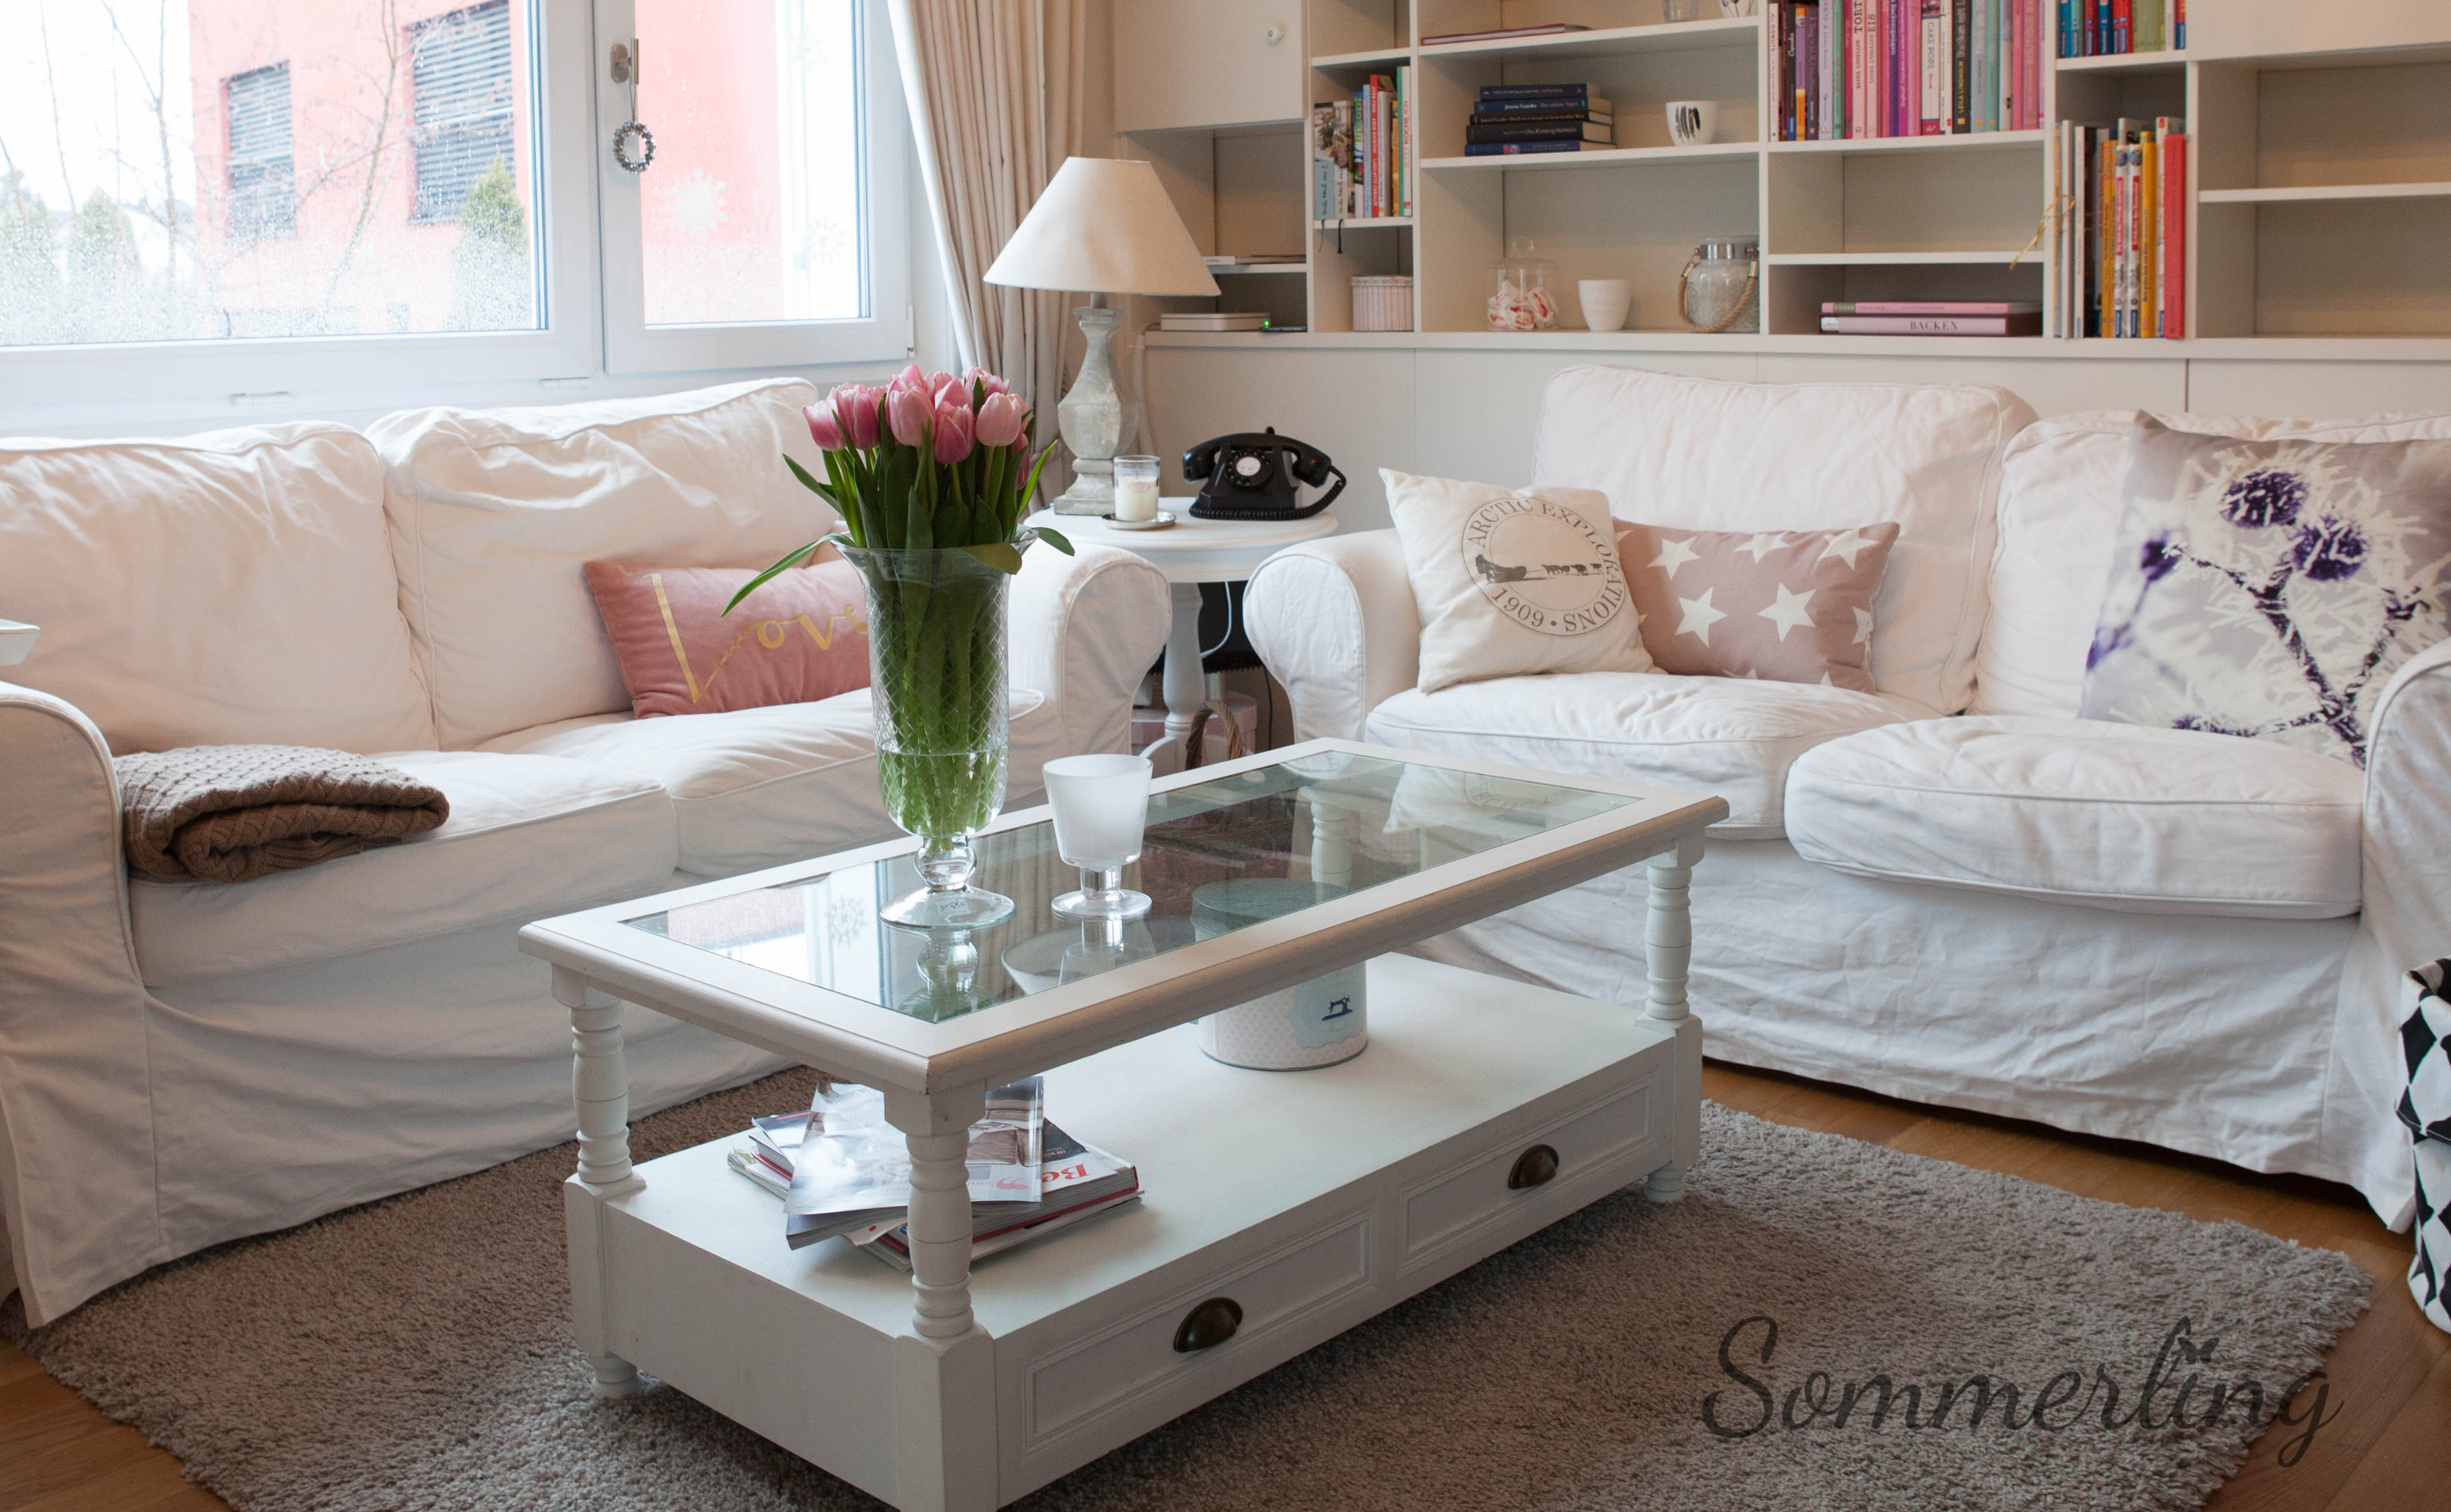 neues outfit f rs wohnzimmer sommerling. Black Bedroom Furniture Sets. Home Design Ideas